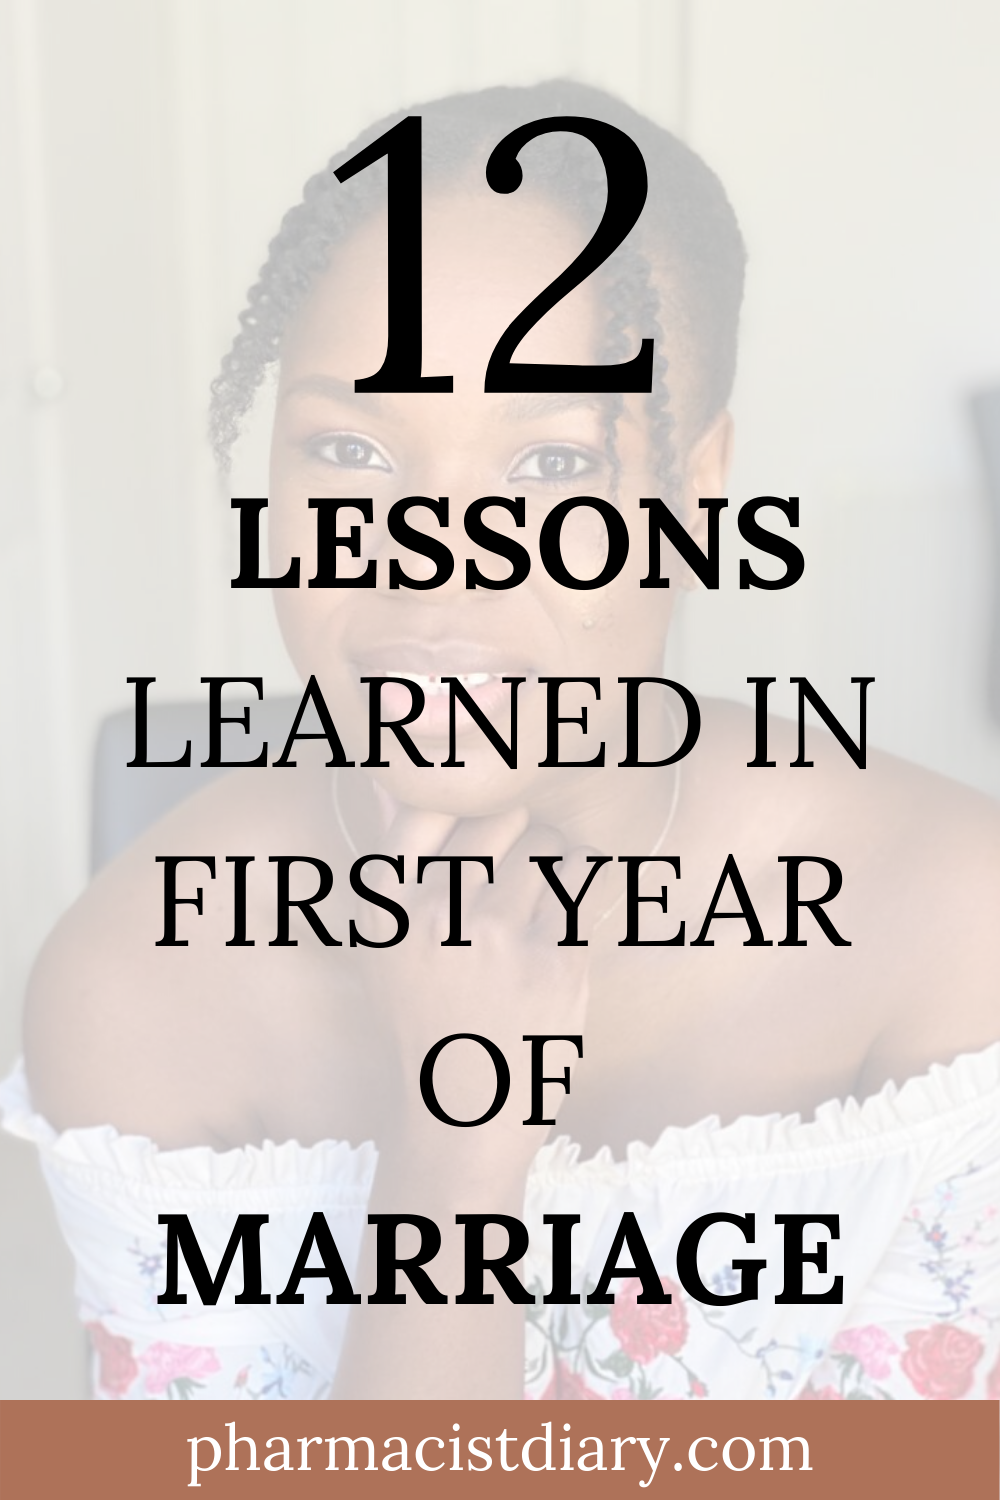 12 Lessons of marriage